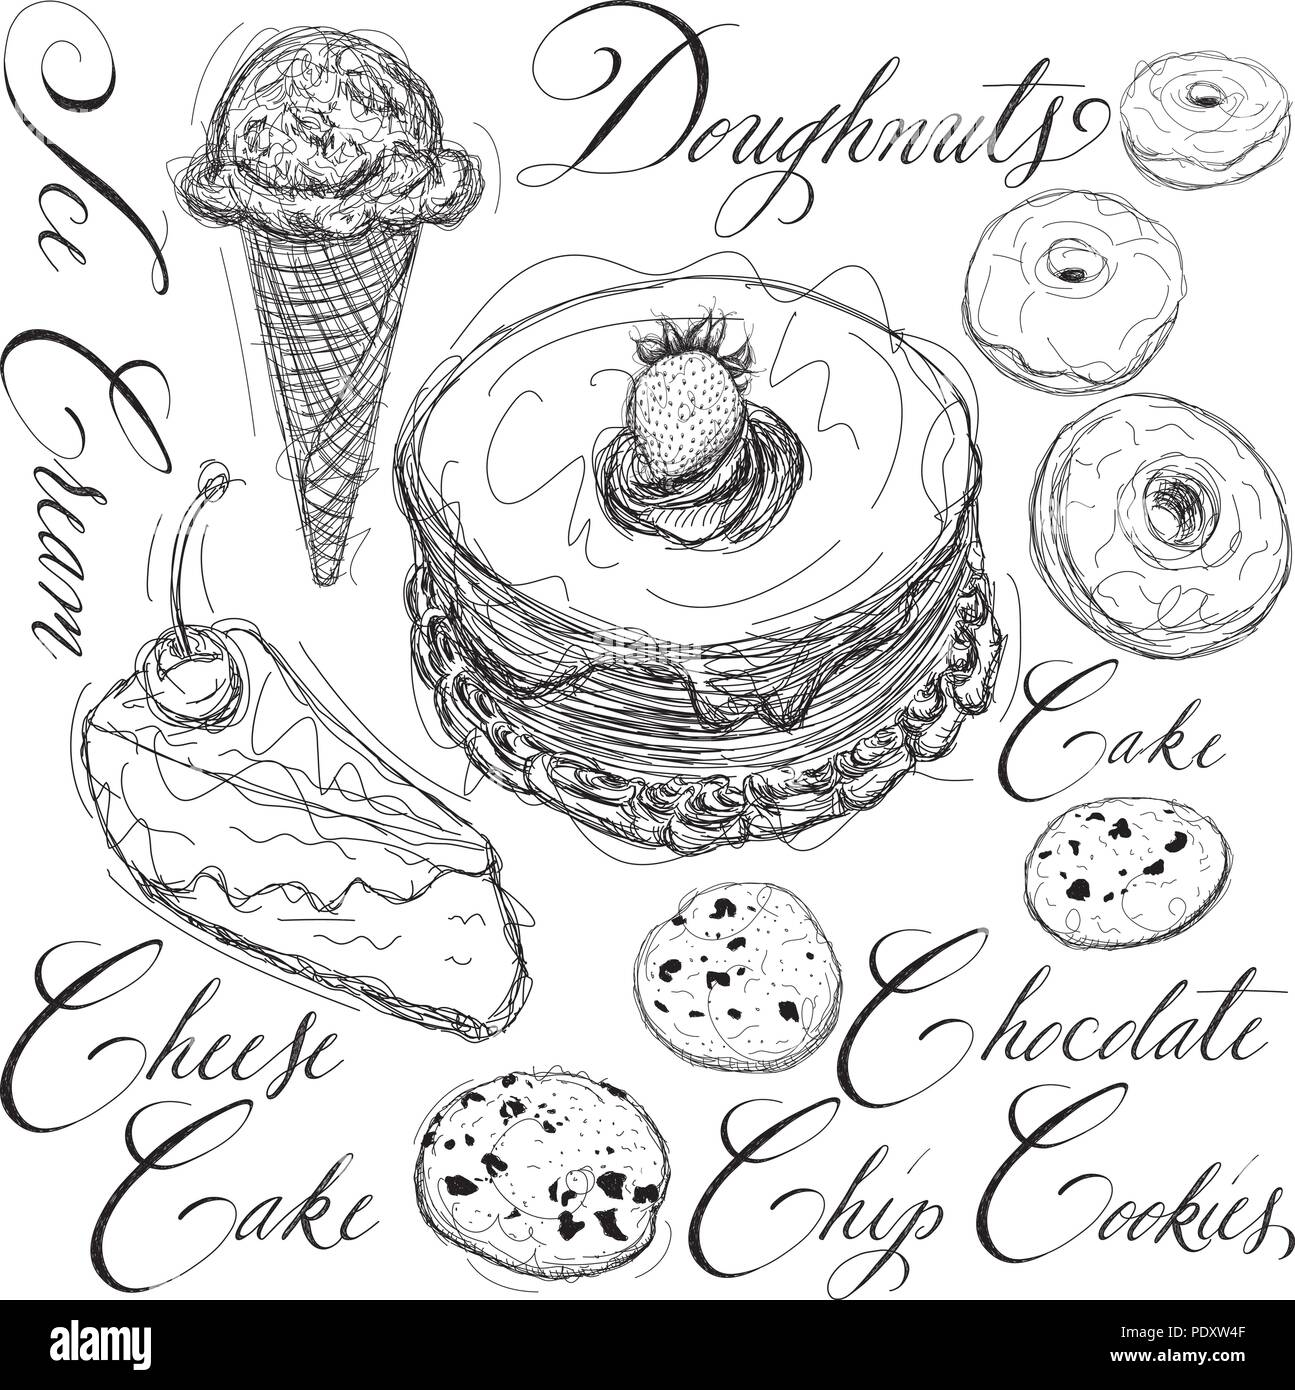 Dessert sketches with calligraphy - Stock Vector